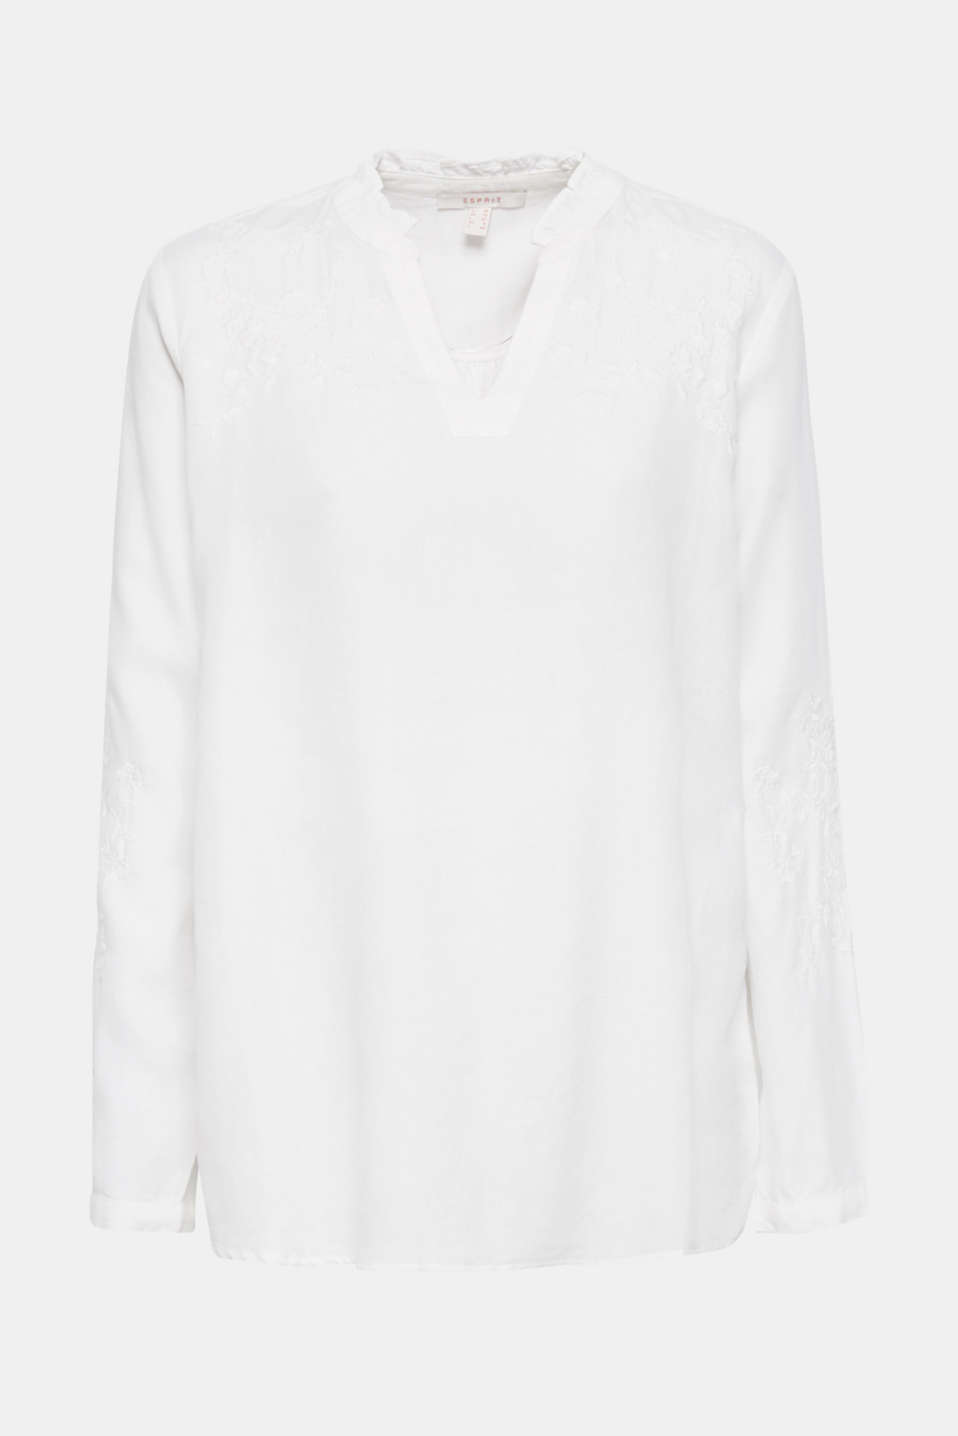 Check out this embroidered linen tunic made of blended lyocell, OFF WHITE, detail image number 6